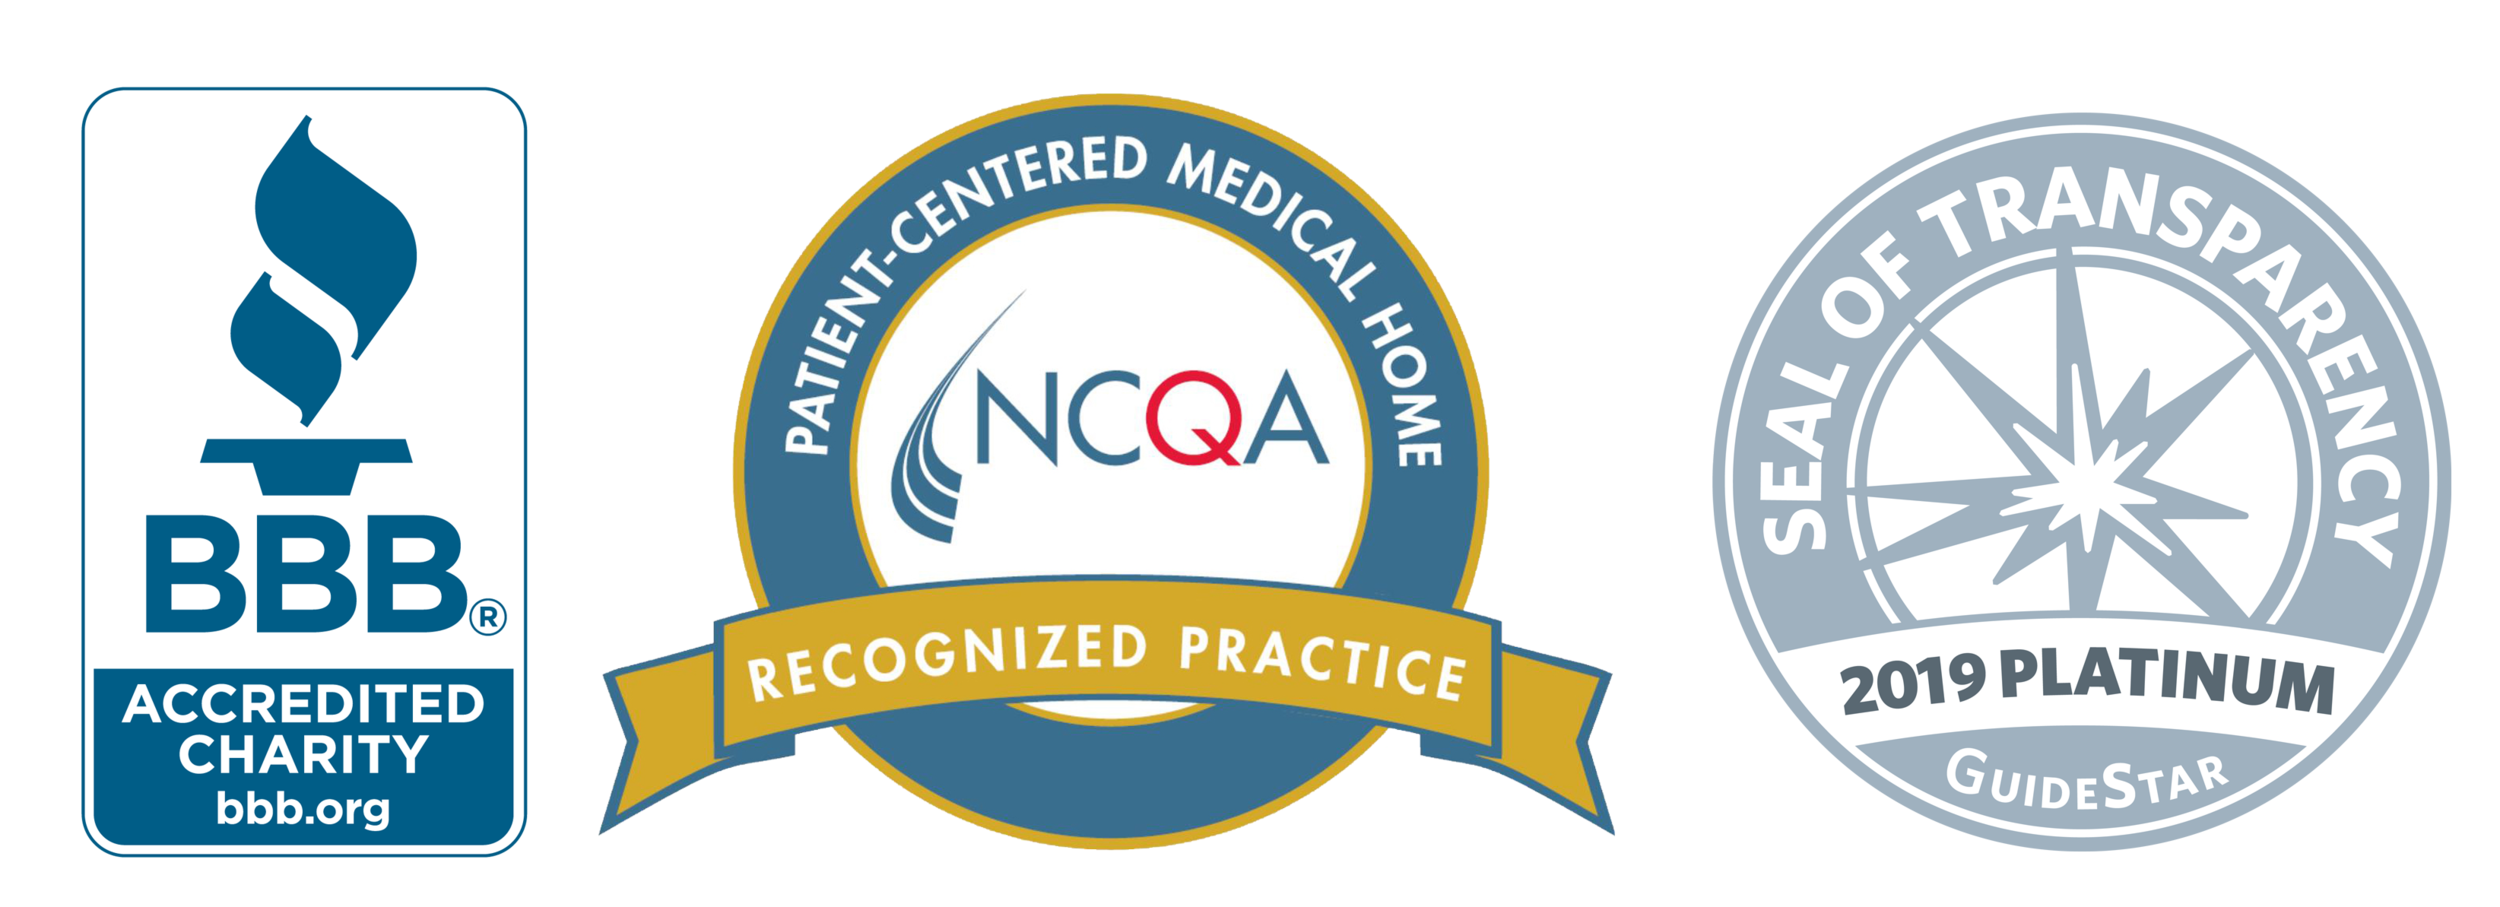 GraceMed Certification: BBB, NCQA, Guidestar